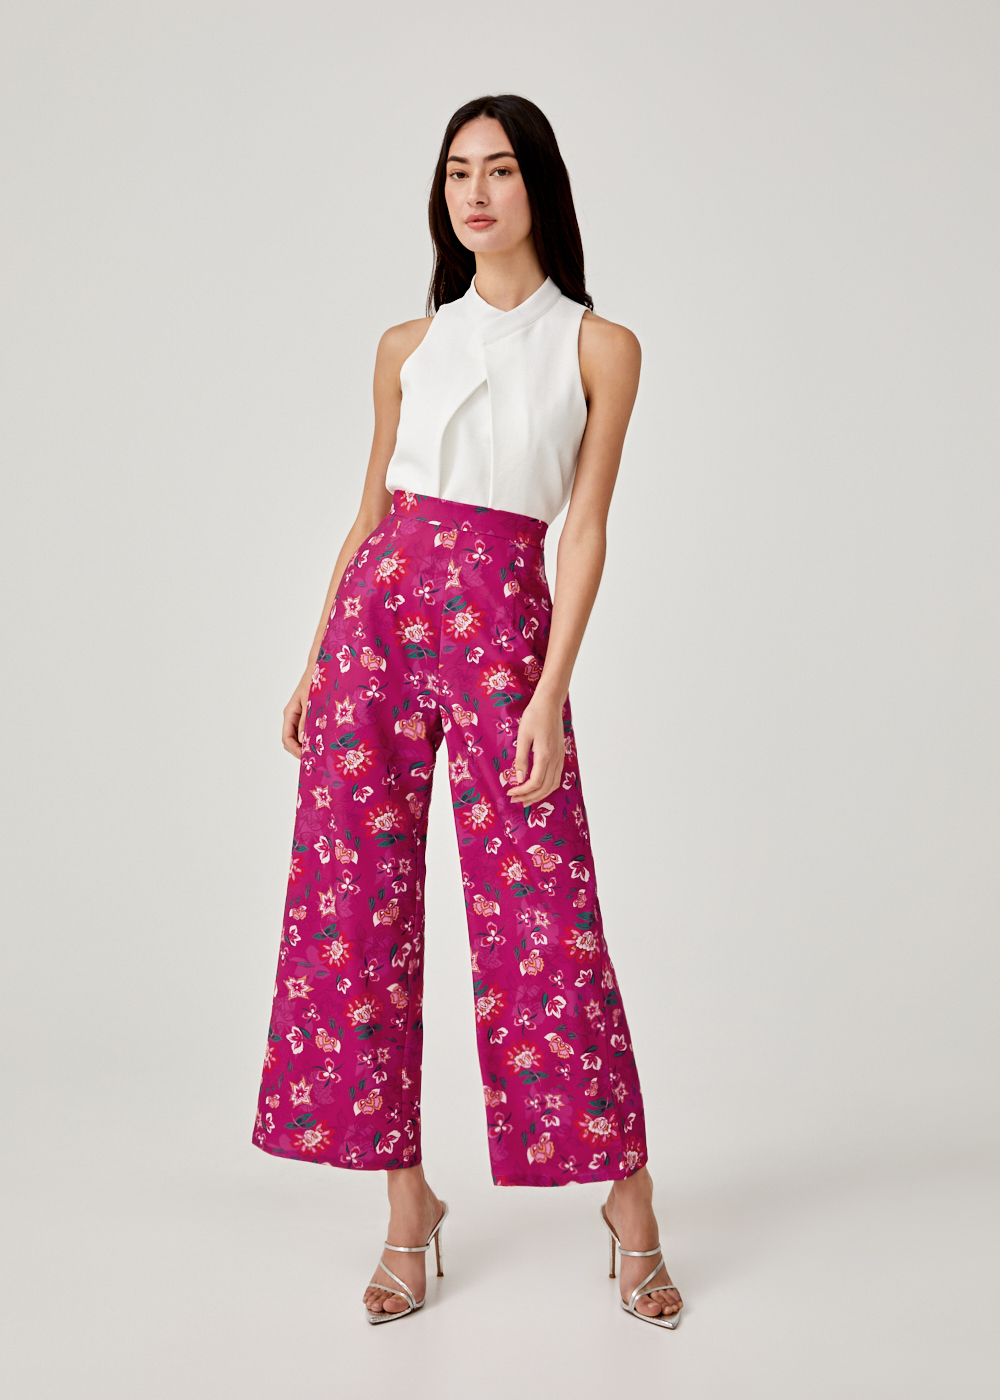 Luvenia Straight Leg Pants in Jade Blossom